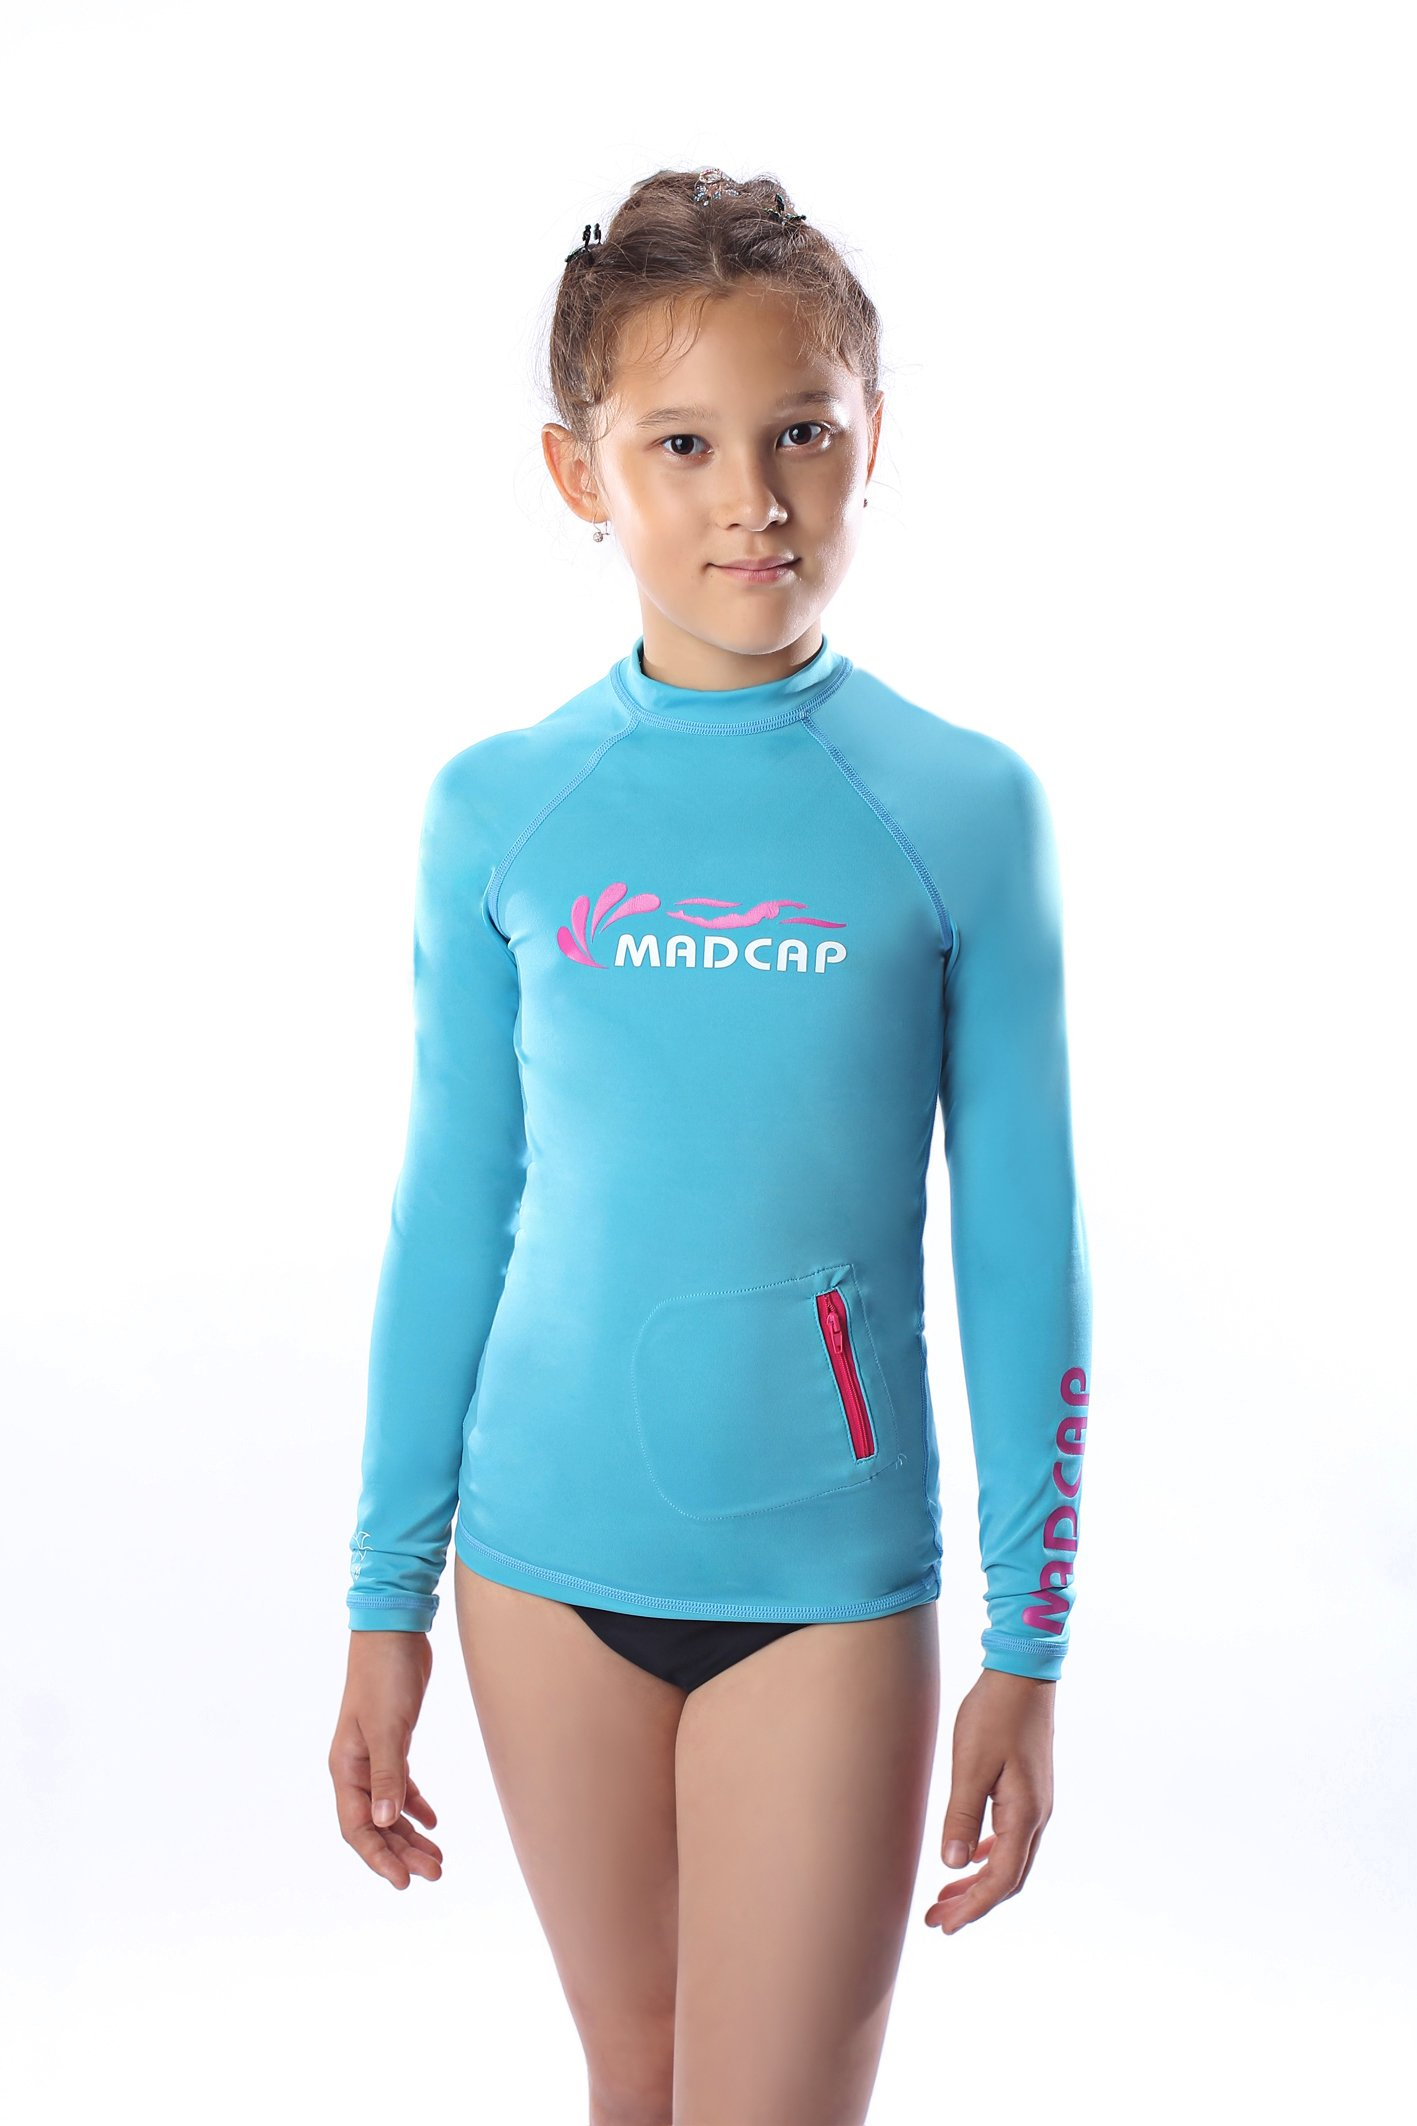 MADCAP Girls' UV Sun Protection Long-Sleeve Rash Guard (Blue, 14-L)